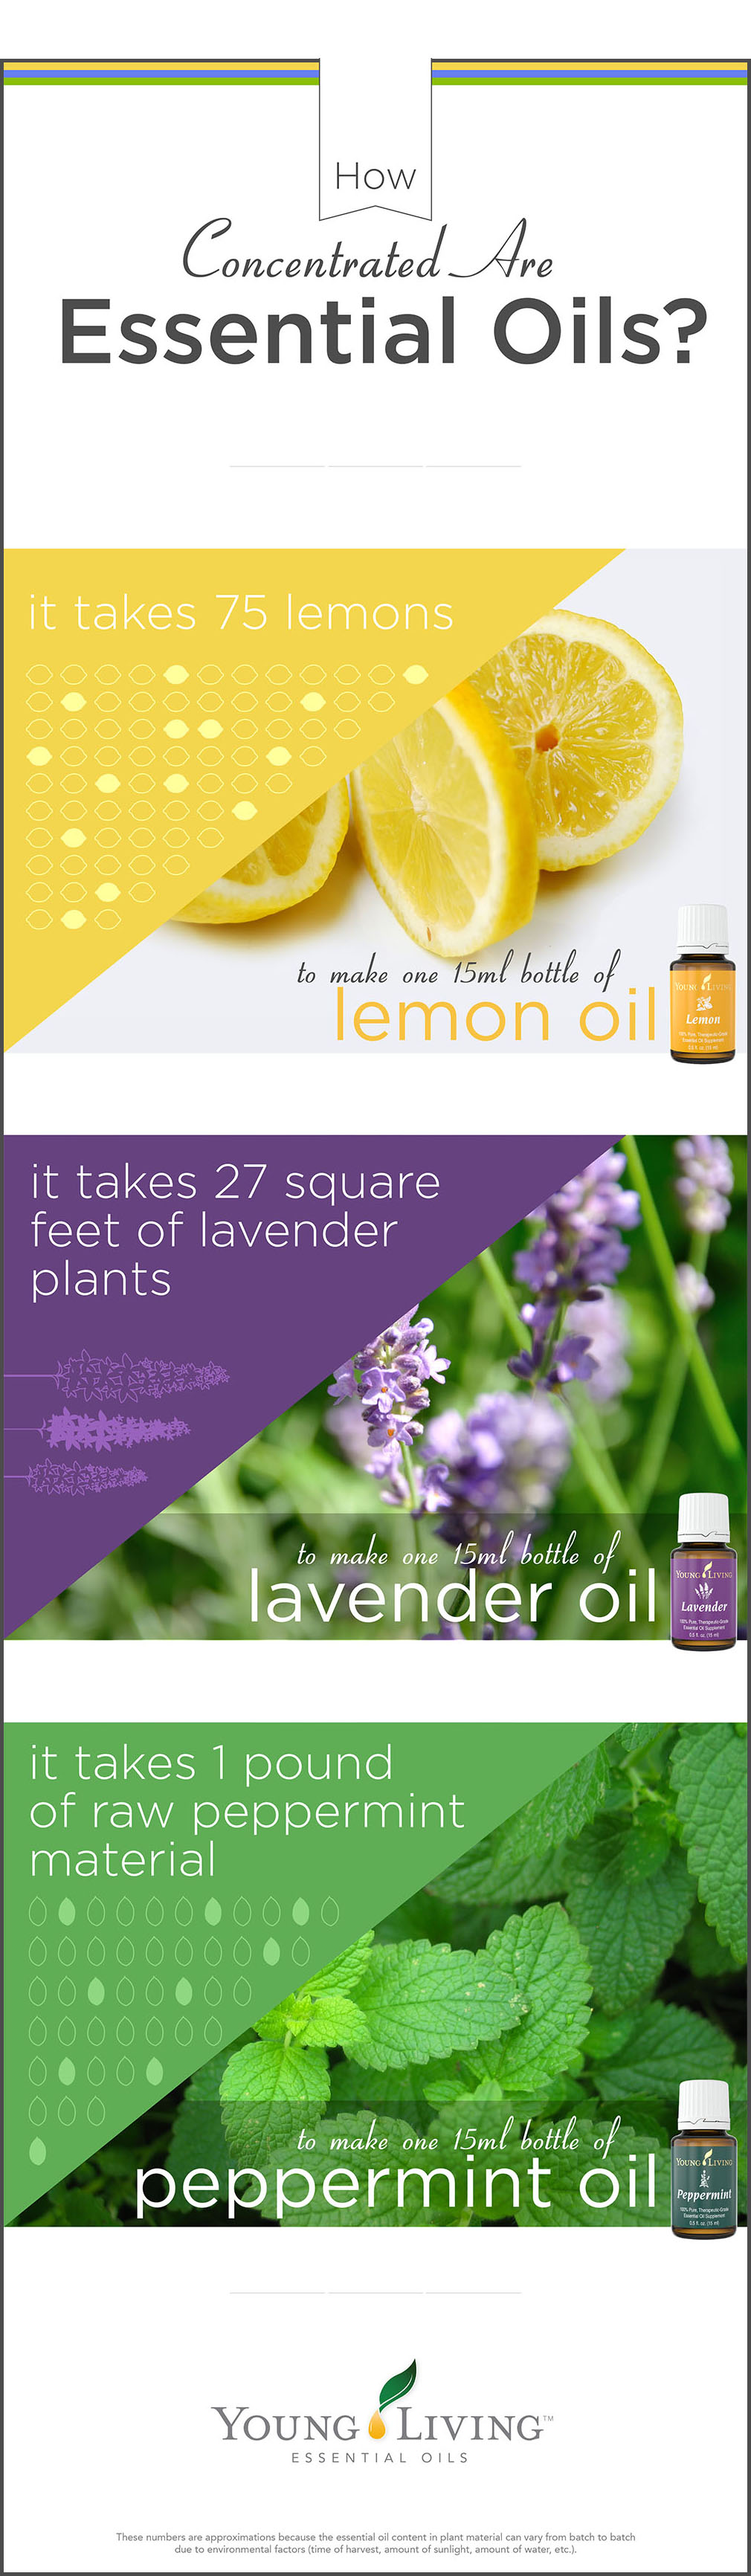 Young living essential oils ingredients